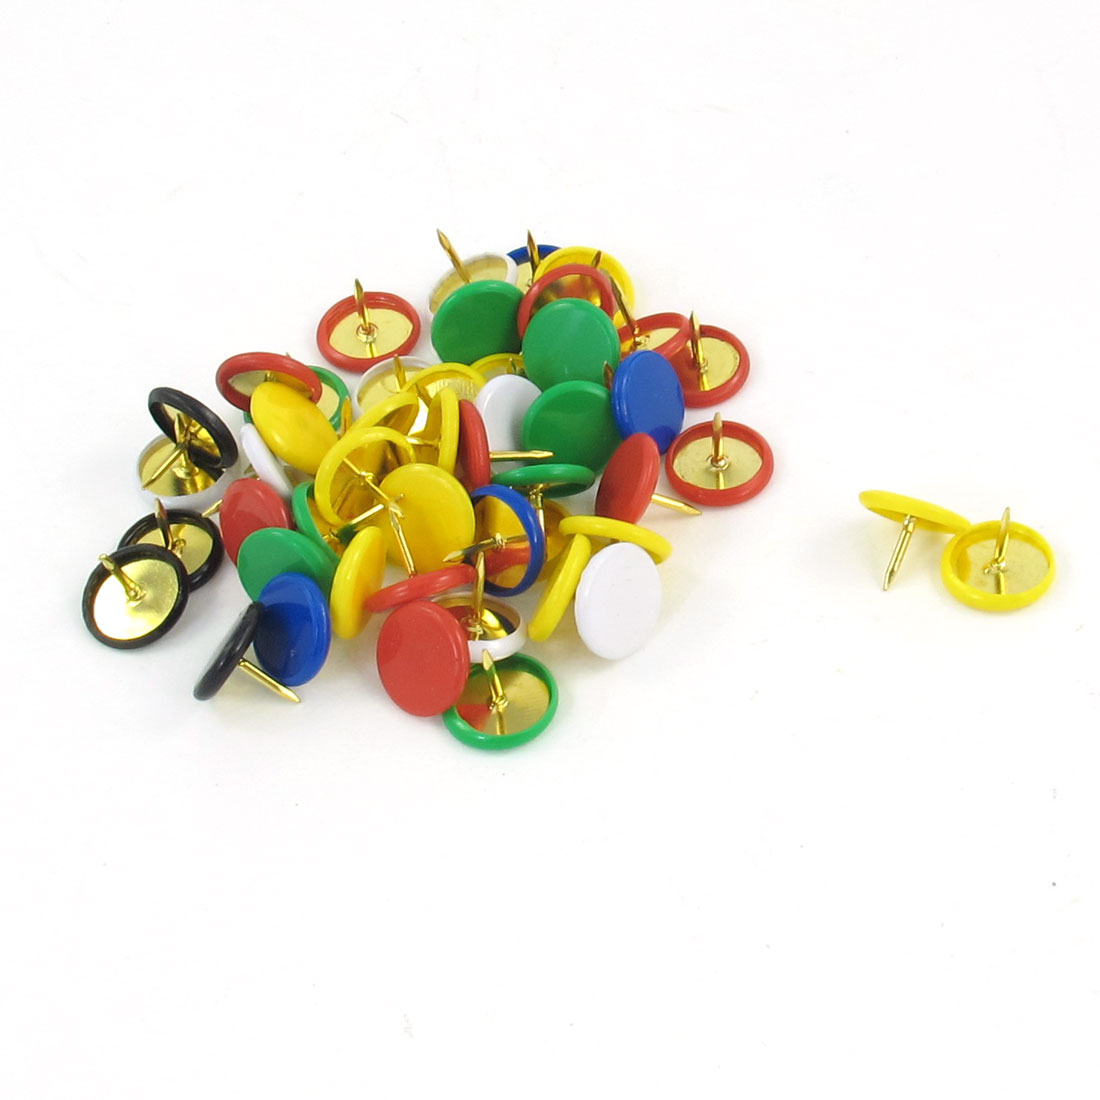 Multicolor Plastic Capped Metal Push Pins 52 Pcs for Cork Board